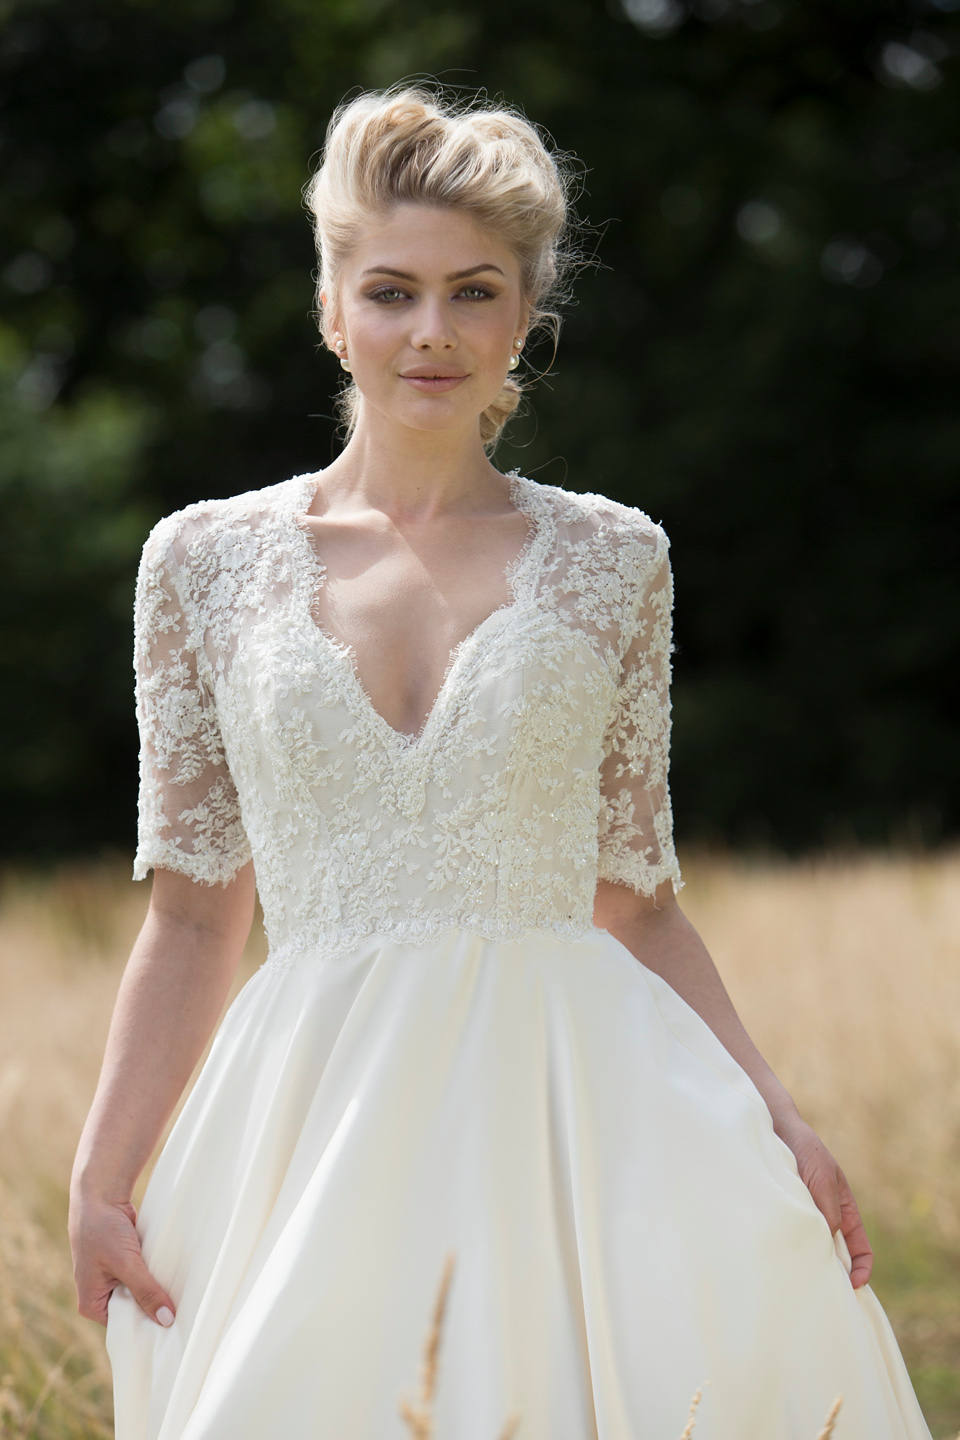 To Be Loved – The Romantic New Bridalwear Collection From Lyn Ashworth by Sarah Barrett